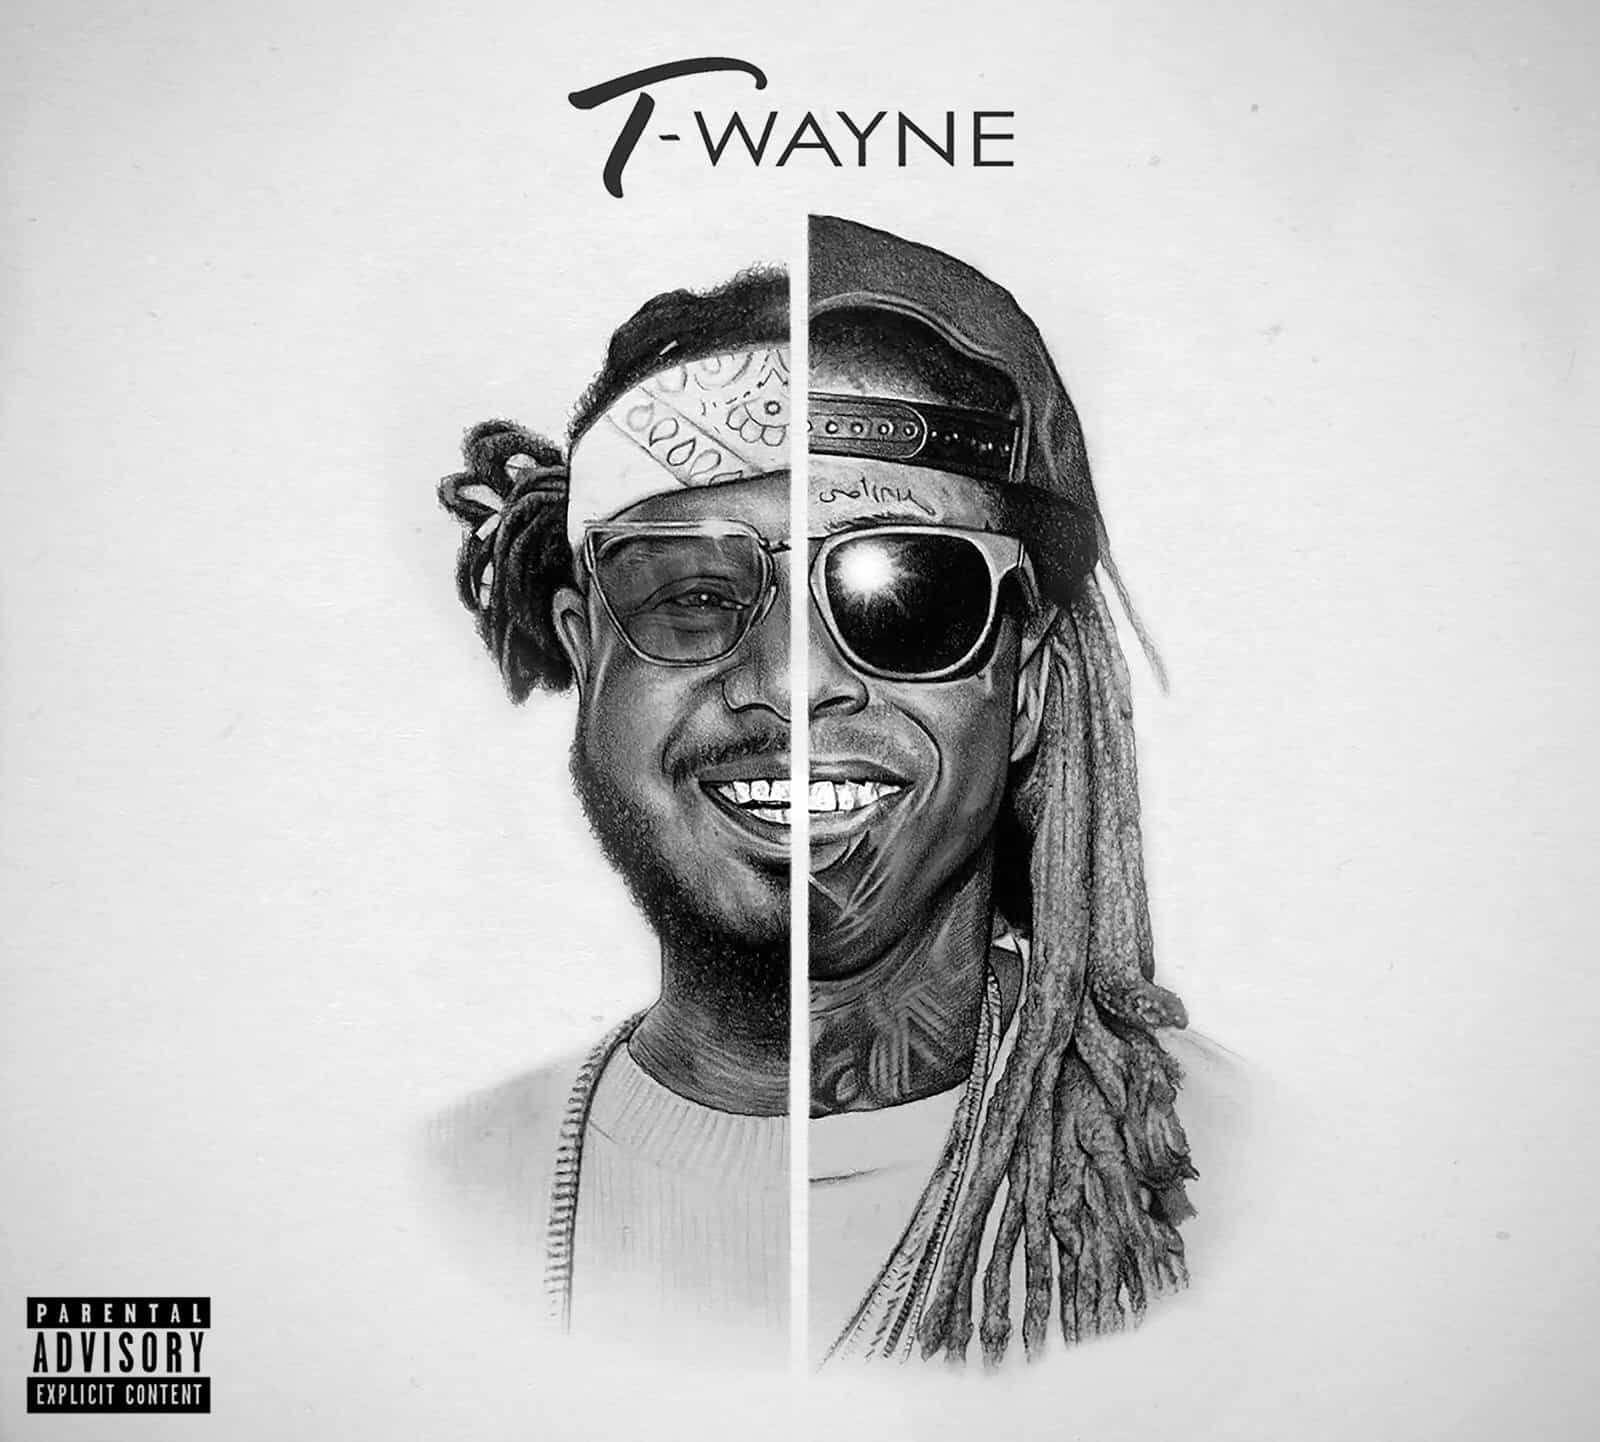 'T-Wayne' takes us back to that time Lil Wayne was the best rapper alive